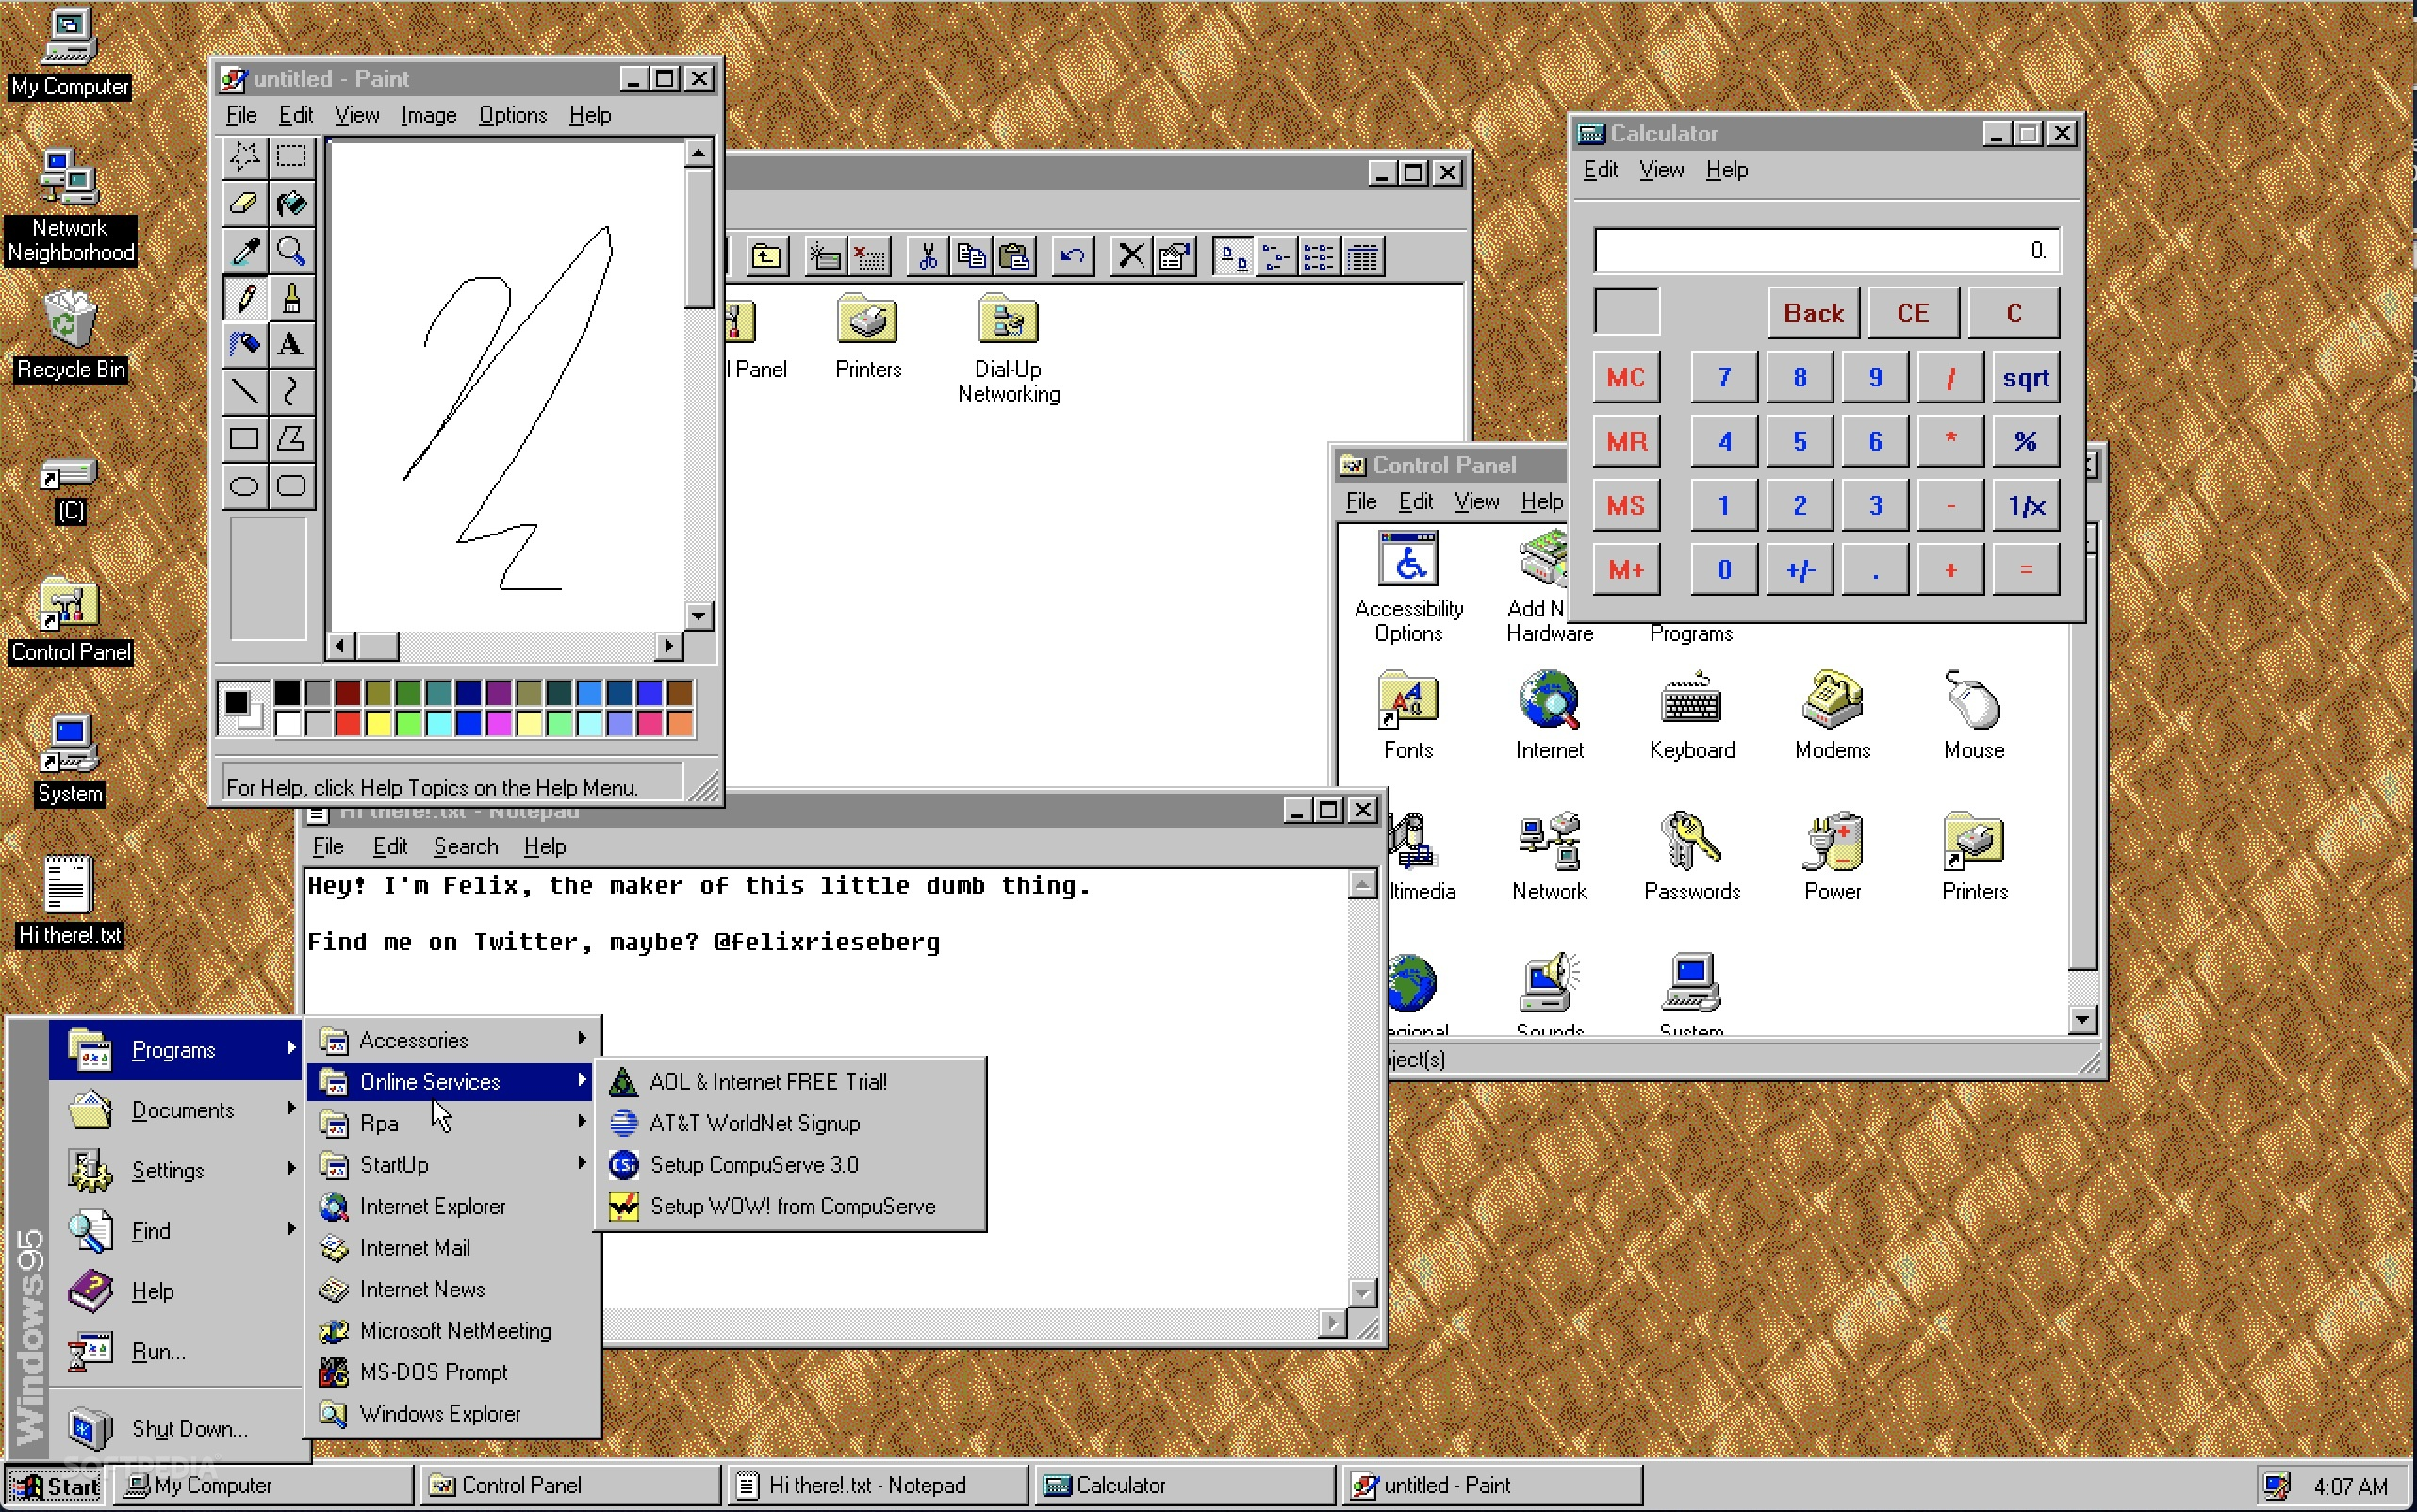 windows-95-is-now-available-on-linux-mac-and-windows-as-an-electron-app-522375-8.jpg